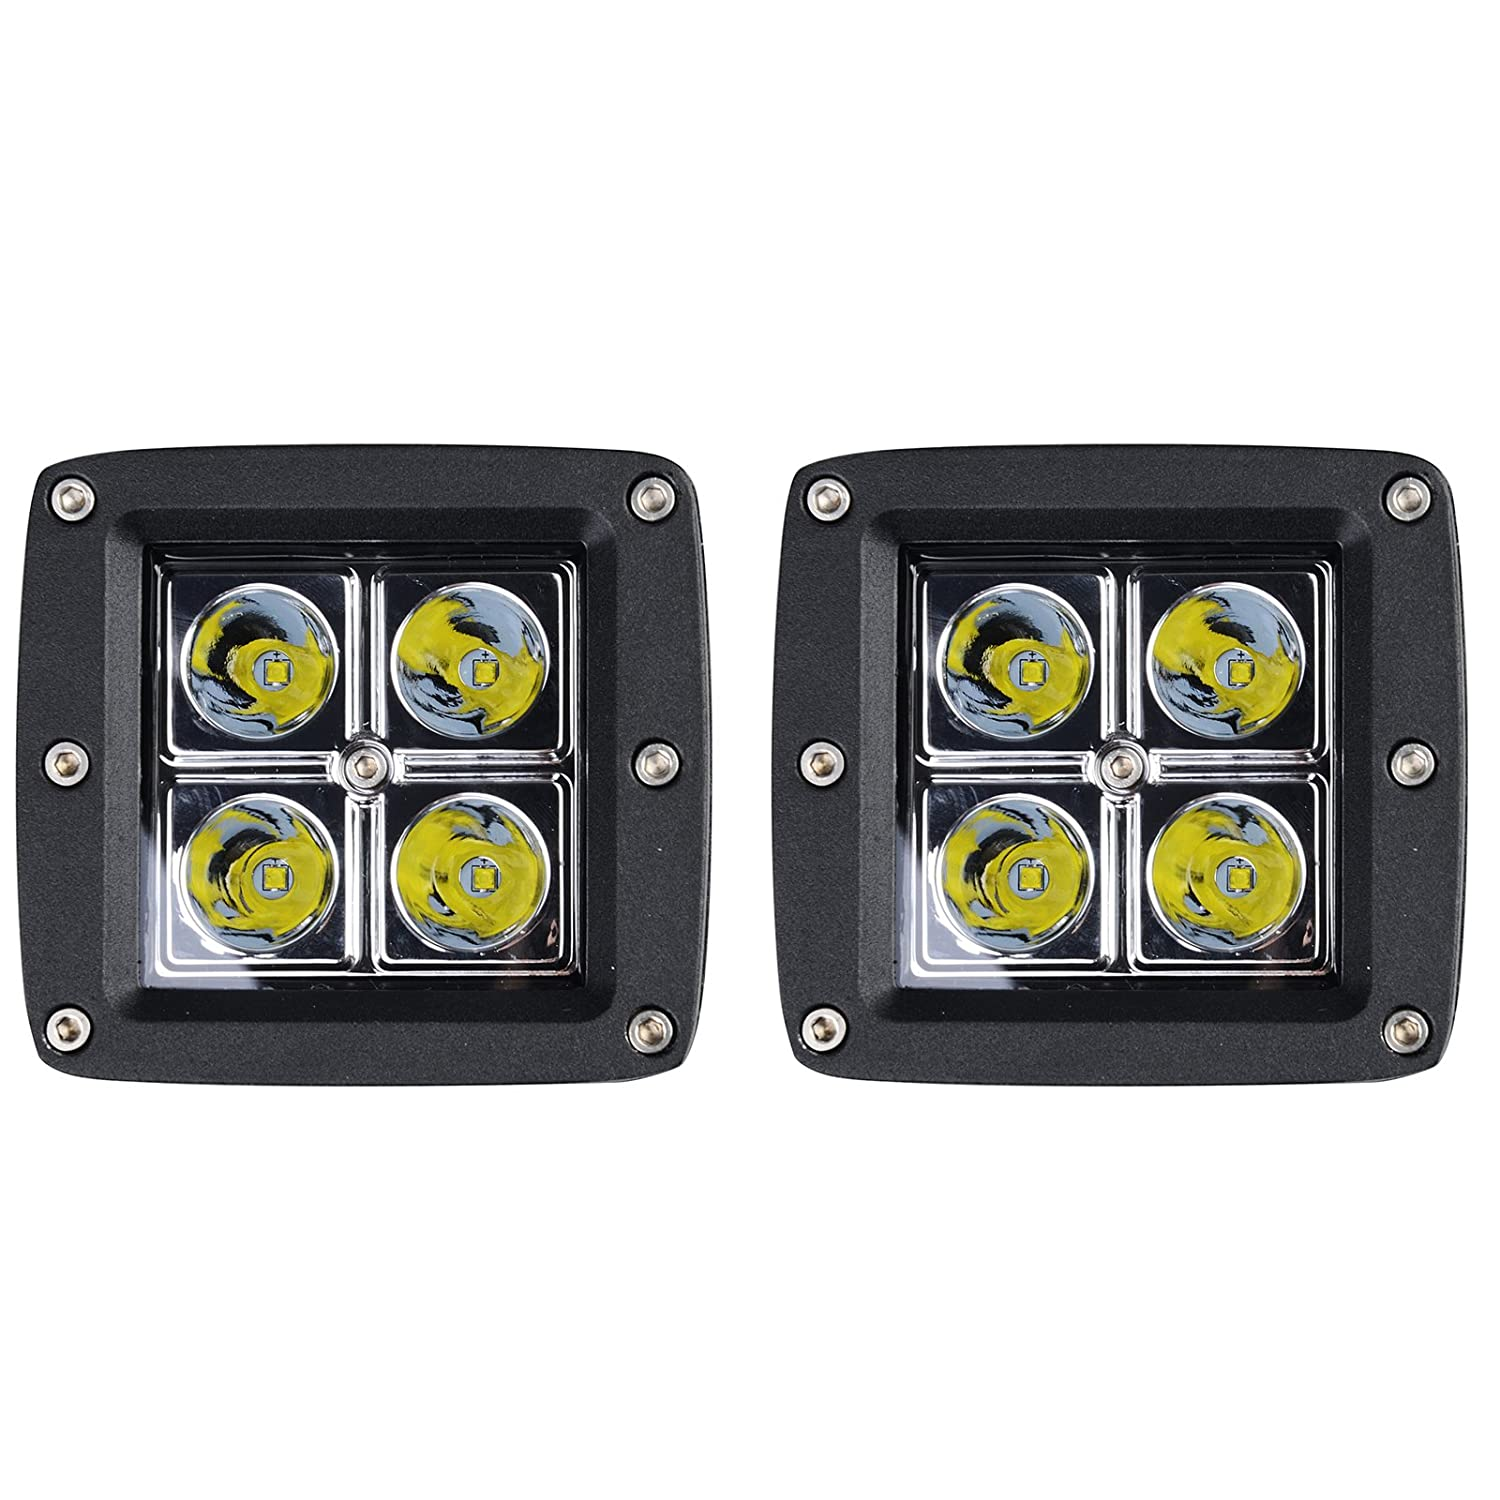 Kawell 2 Pack 16W SPOT Light 1000 Lumens 3x3 Pods for Work, Driving, Fog, Safety, 4x4, Atv, Car, Truck, 4wd, Suv, Tractor, Motorcycle, Boat, Quad, Utv, and Auxiliary Lighting